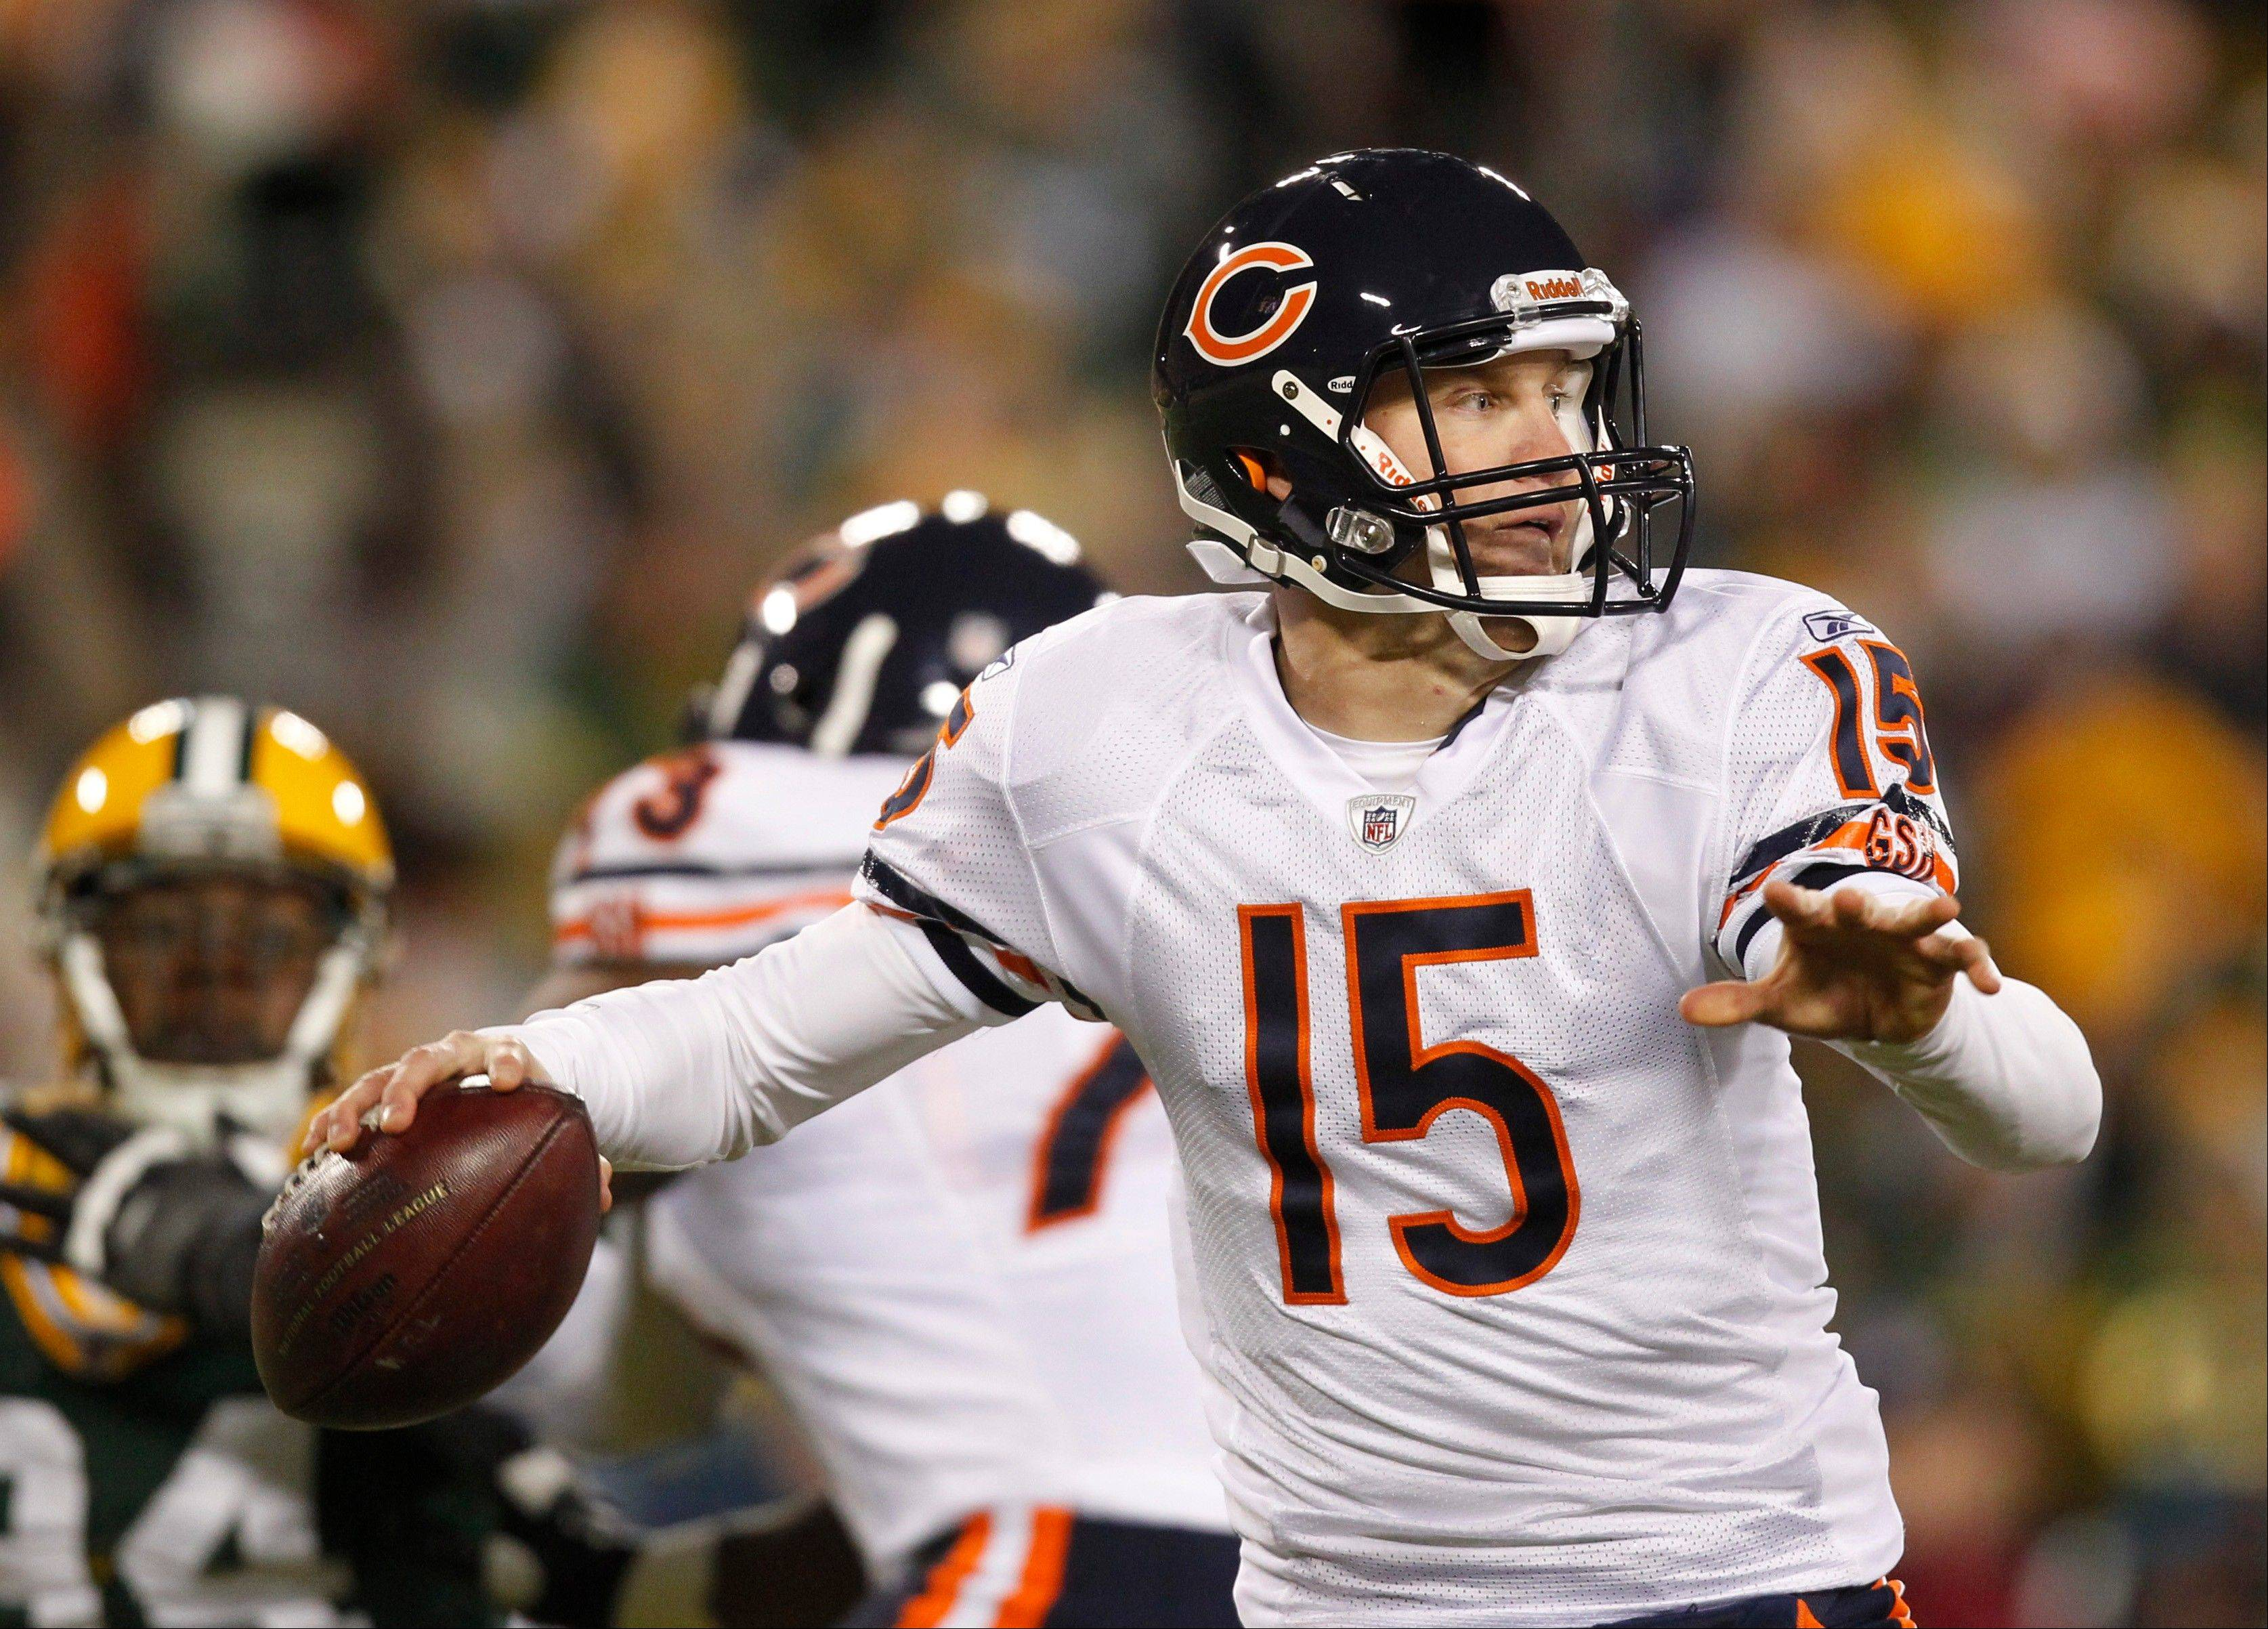 When Bears quarterback Josh McCown faced the Green Bay in 2011, he hadn't started an NFL game in four years. This time, he's had more preparation with the offensive system and he has better receivers at his disposal.